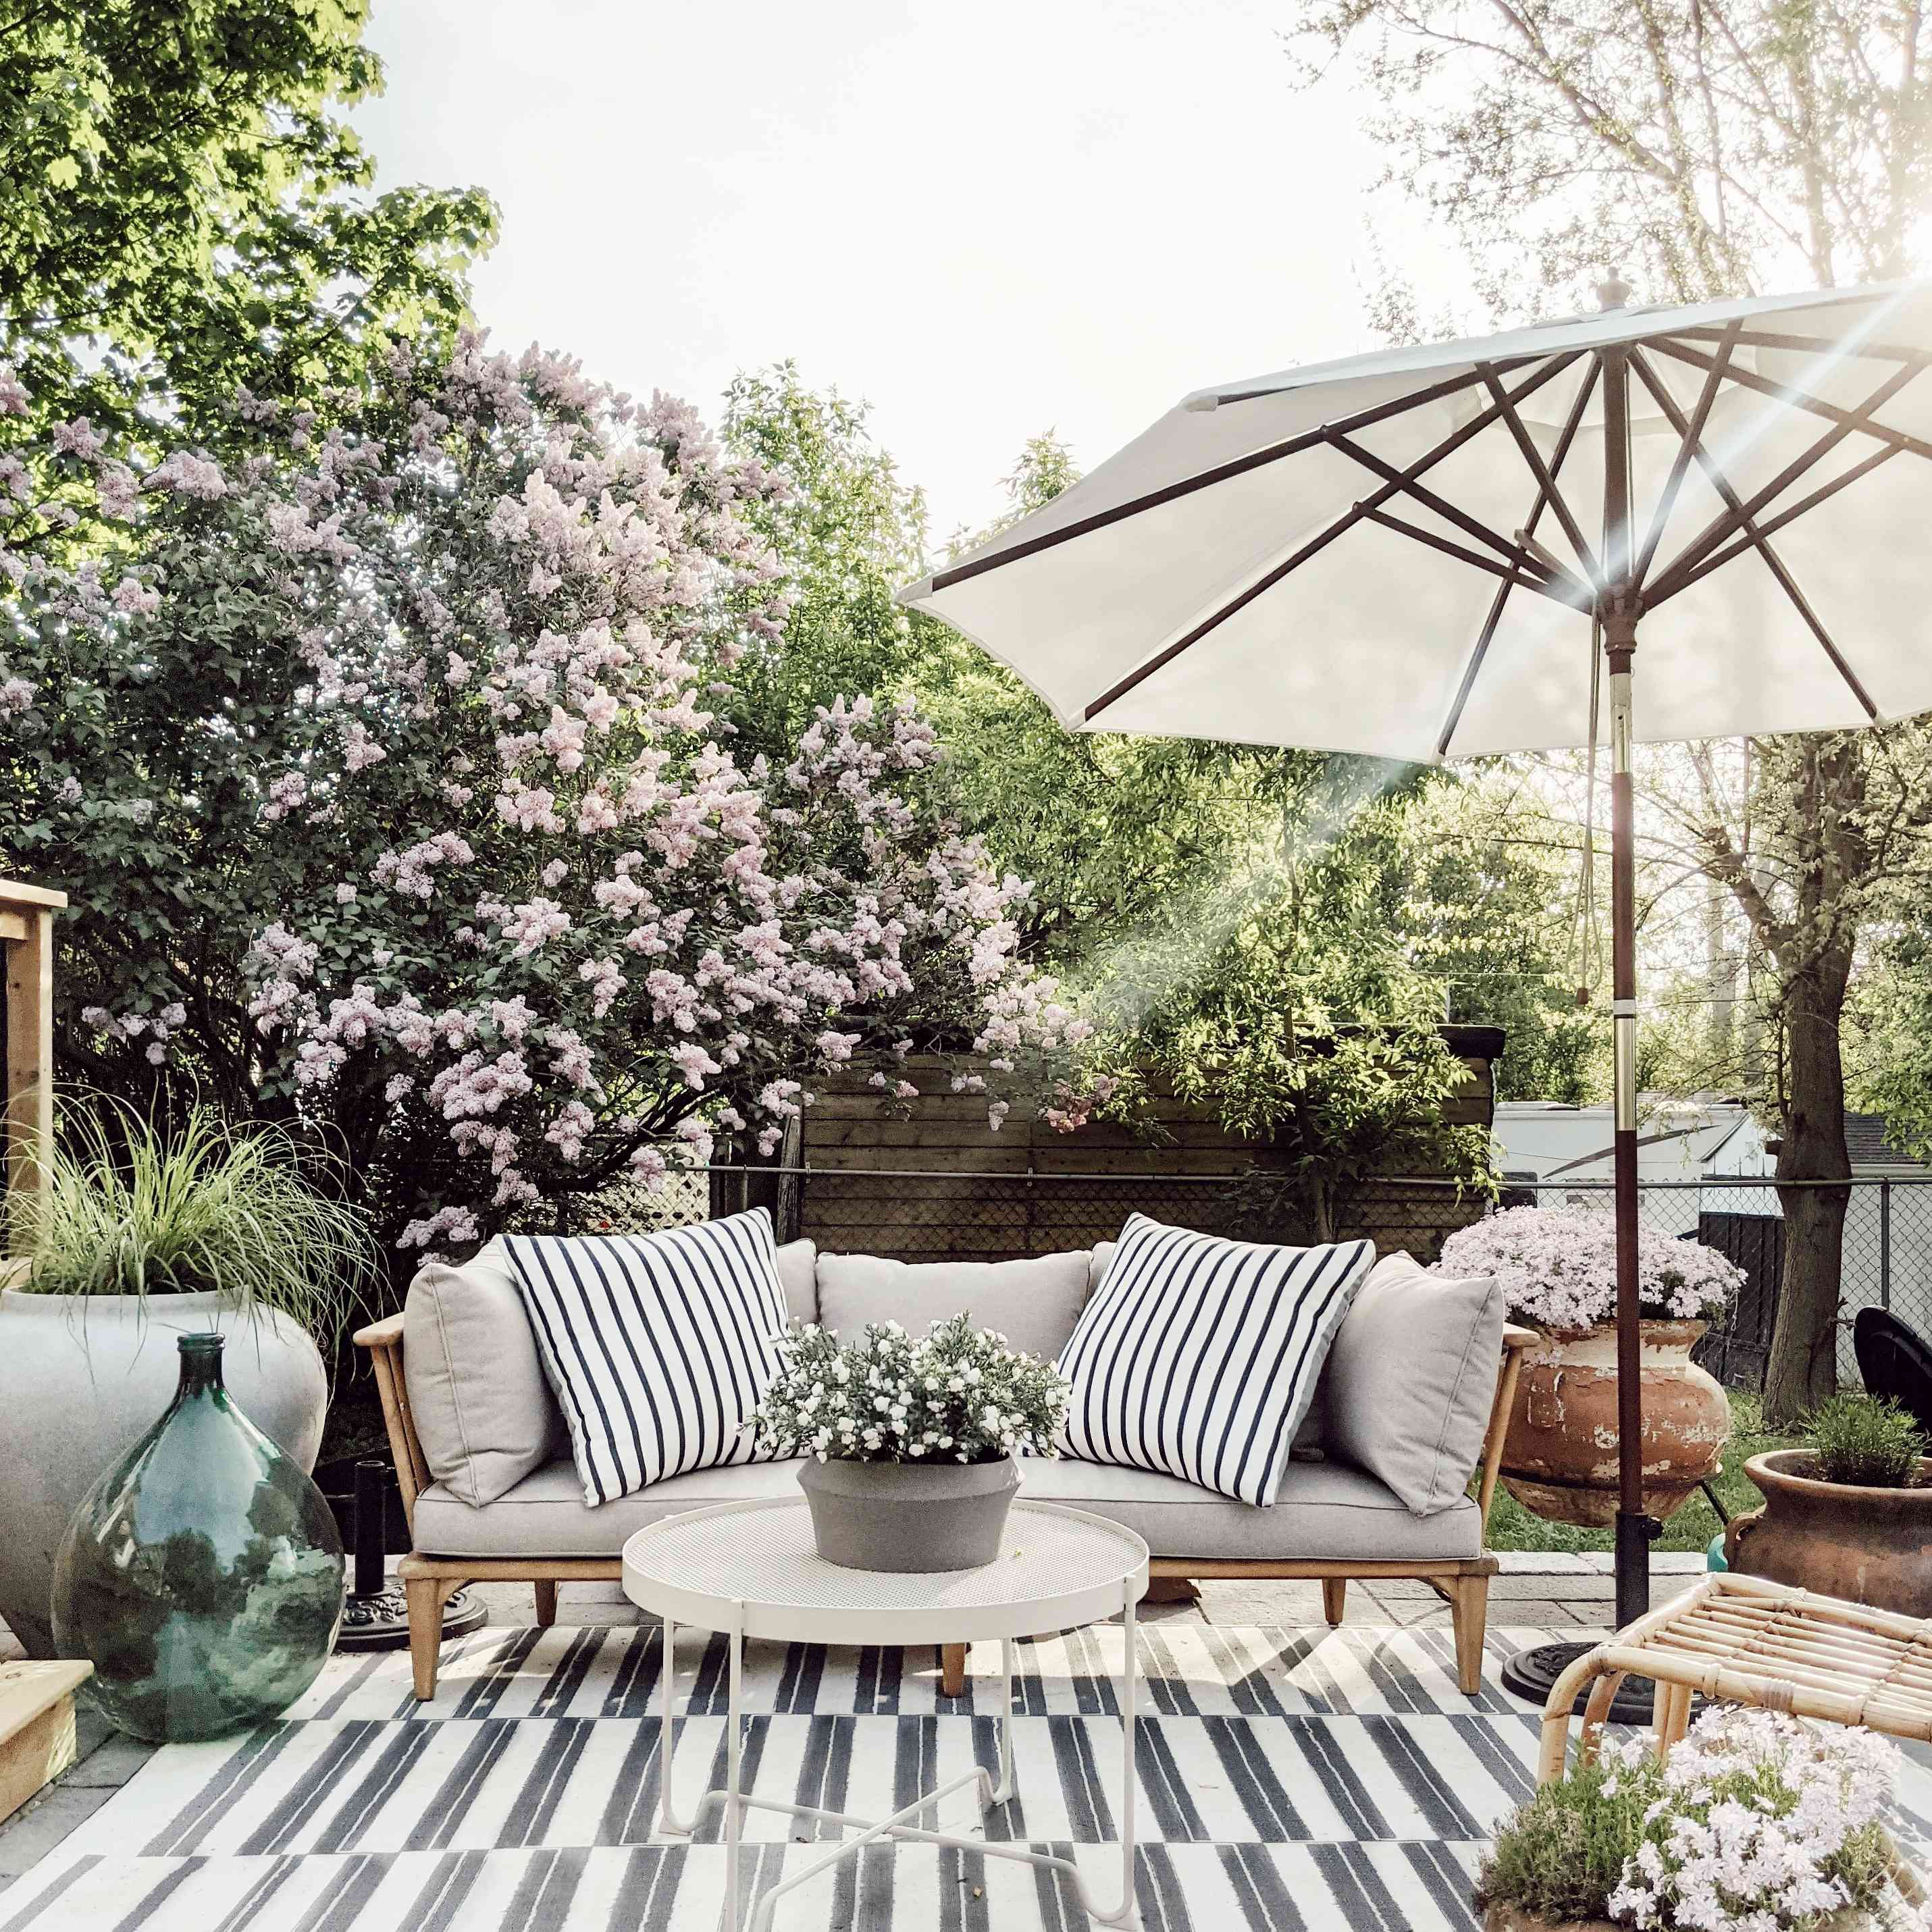 A patio features a striped rug and pilllows with lots of flowers surrounding